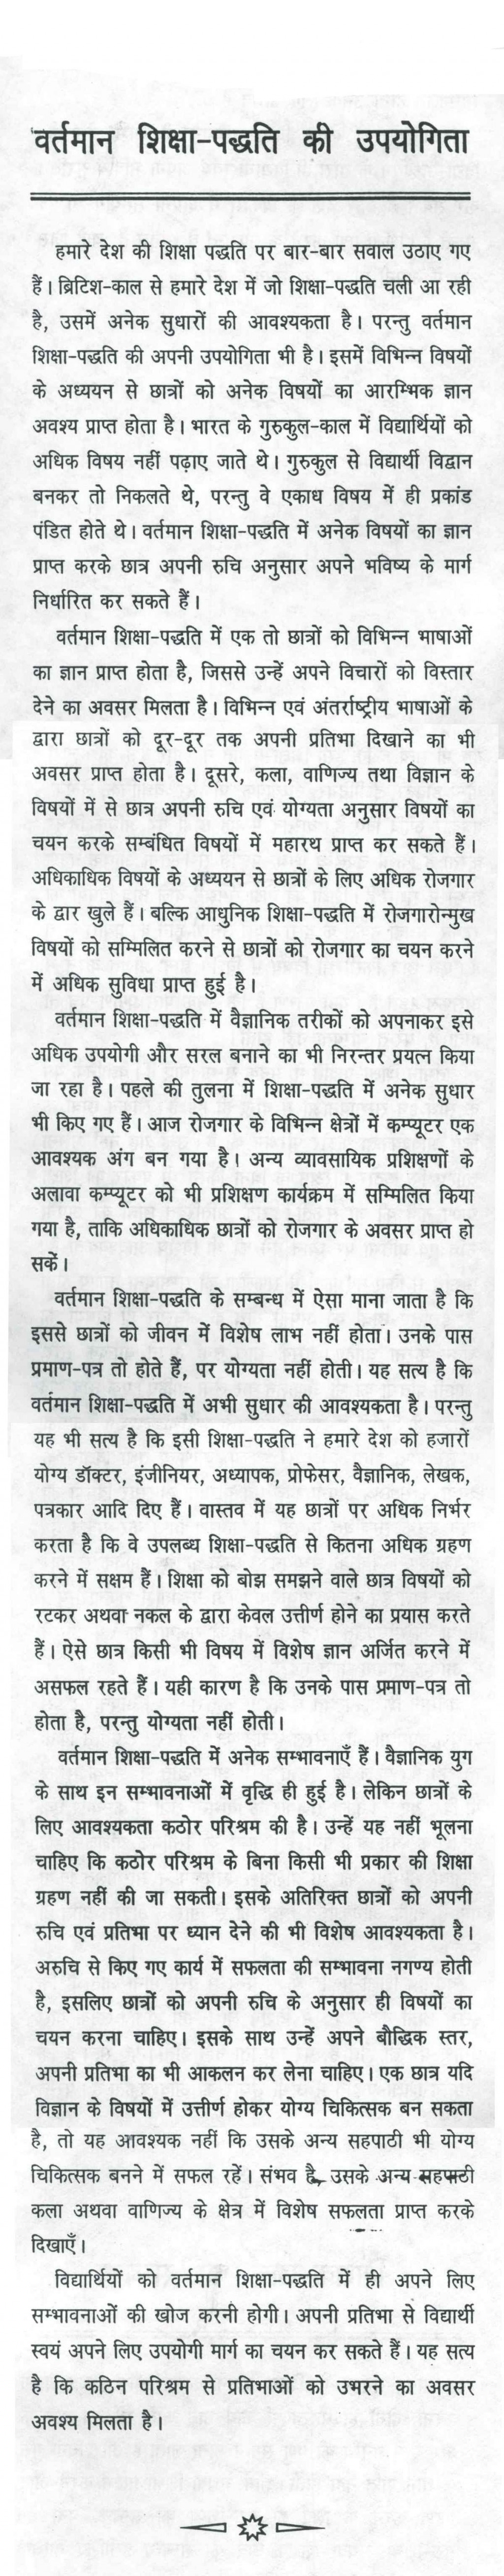 018 Cleanliness Essay In Hindi 10042 Thumb Sensational Is Godliness School Large